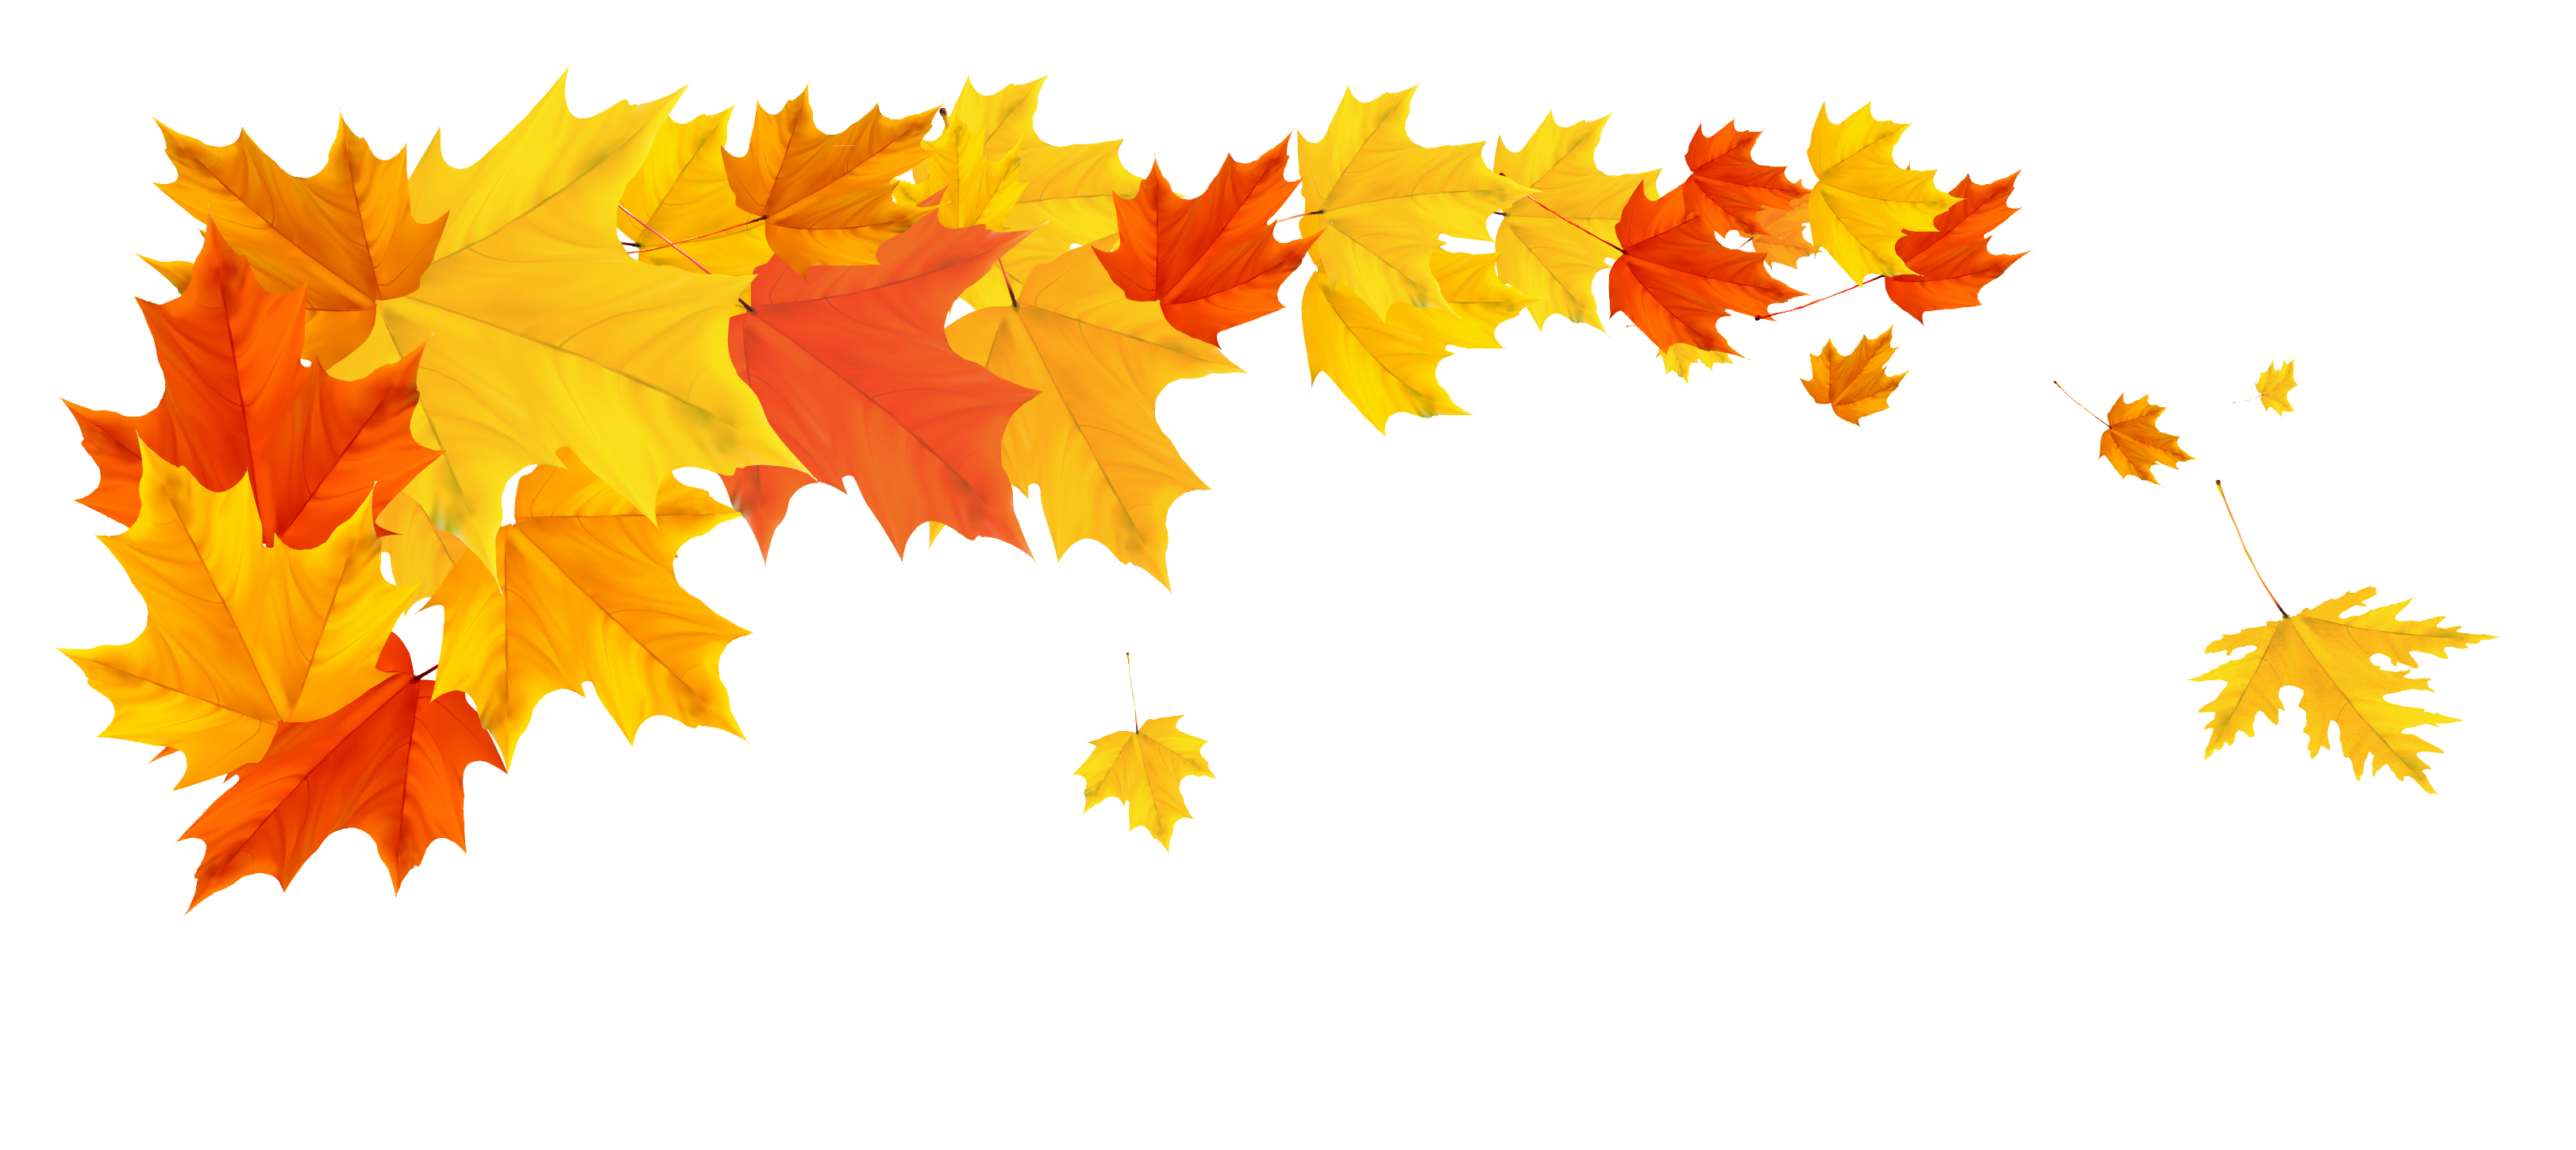 Corner transparent fall leaves. Orange leafs png clipart